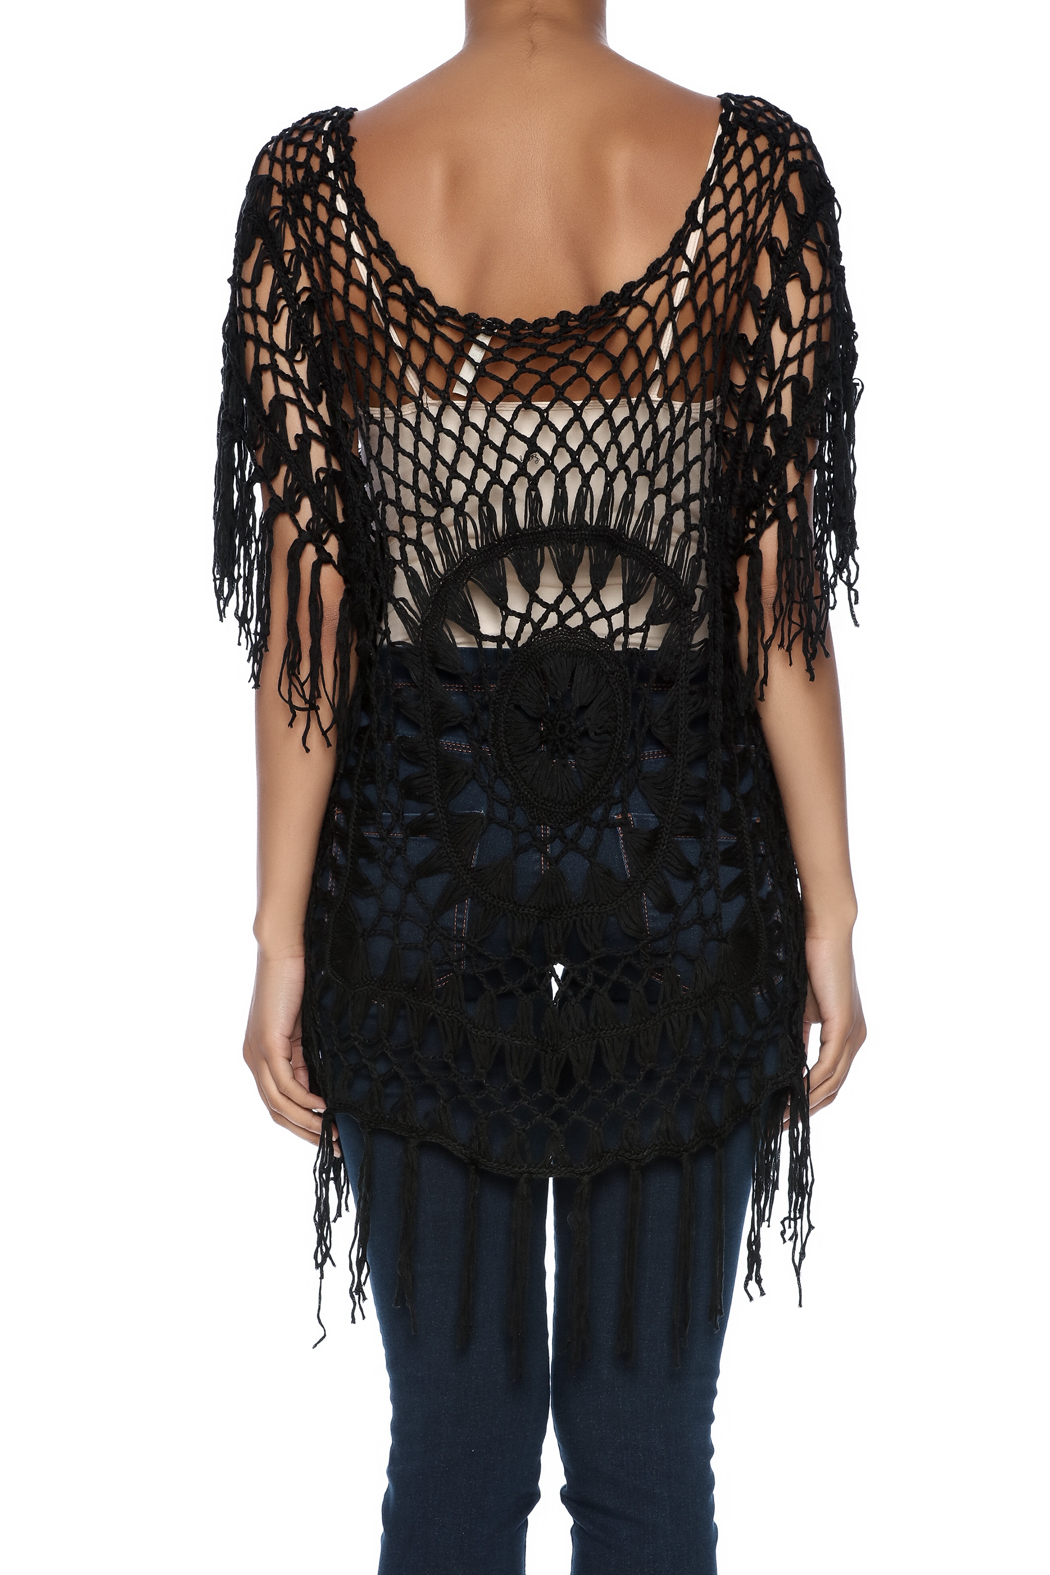 India Boutique Exquisite Crochet Top - Back Cropped Image